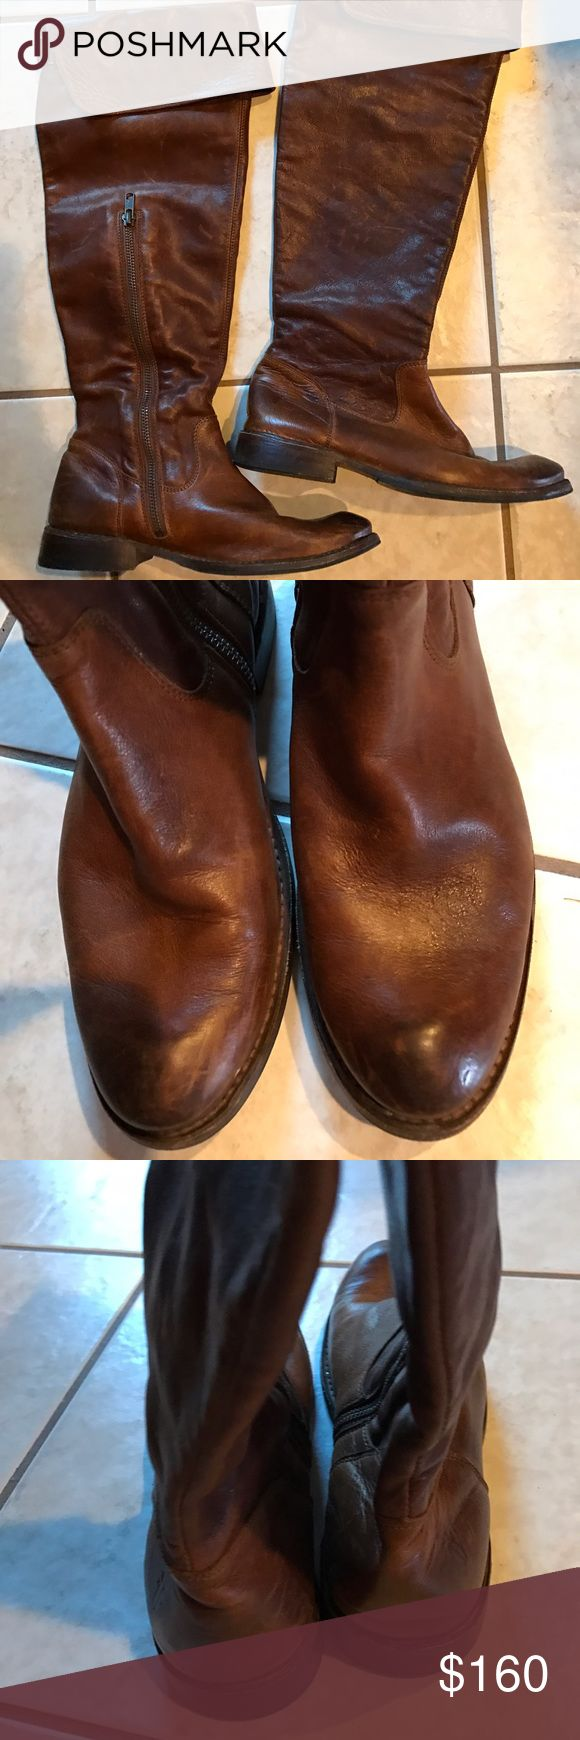 Frye tall brown boots Tall brown leather frye boots. Worn only a handful of times. In good condition! Size 7 Frye Shoes Over the Knee Boots